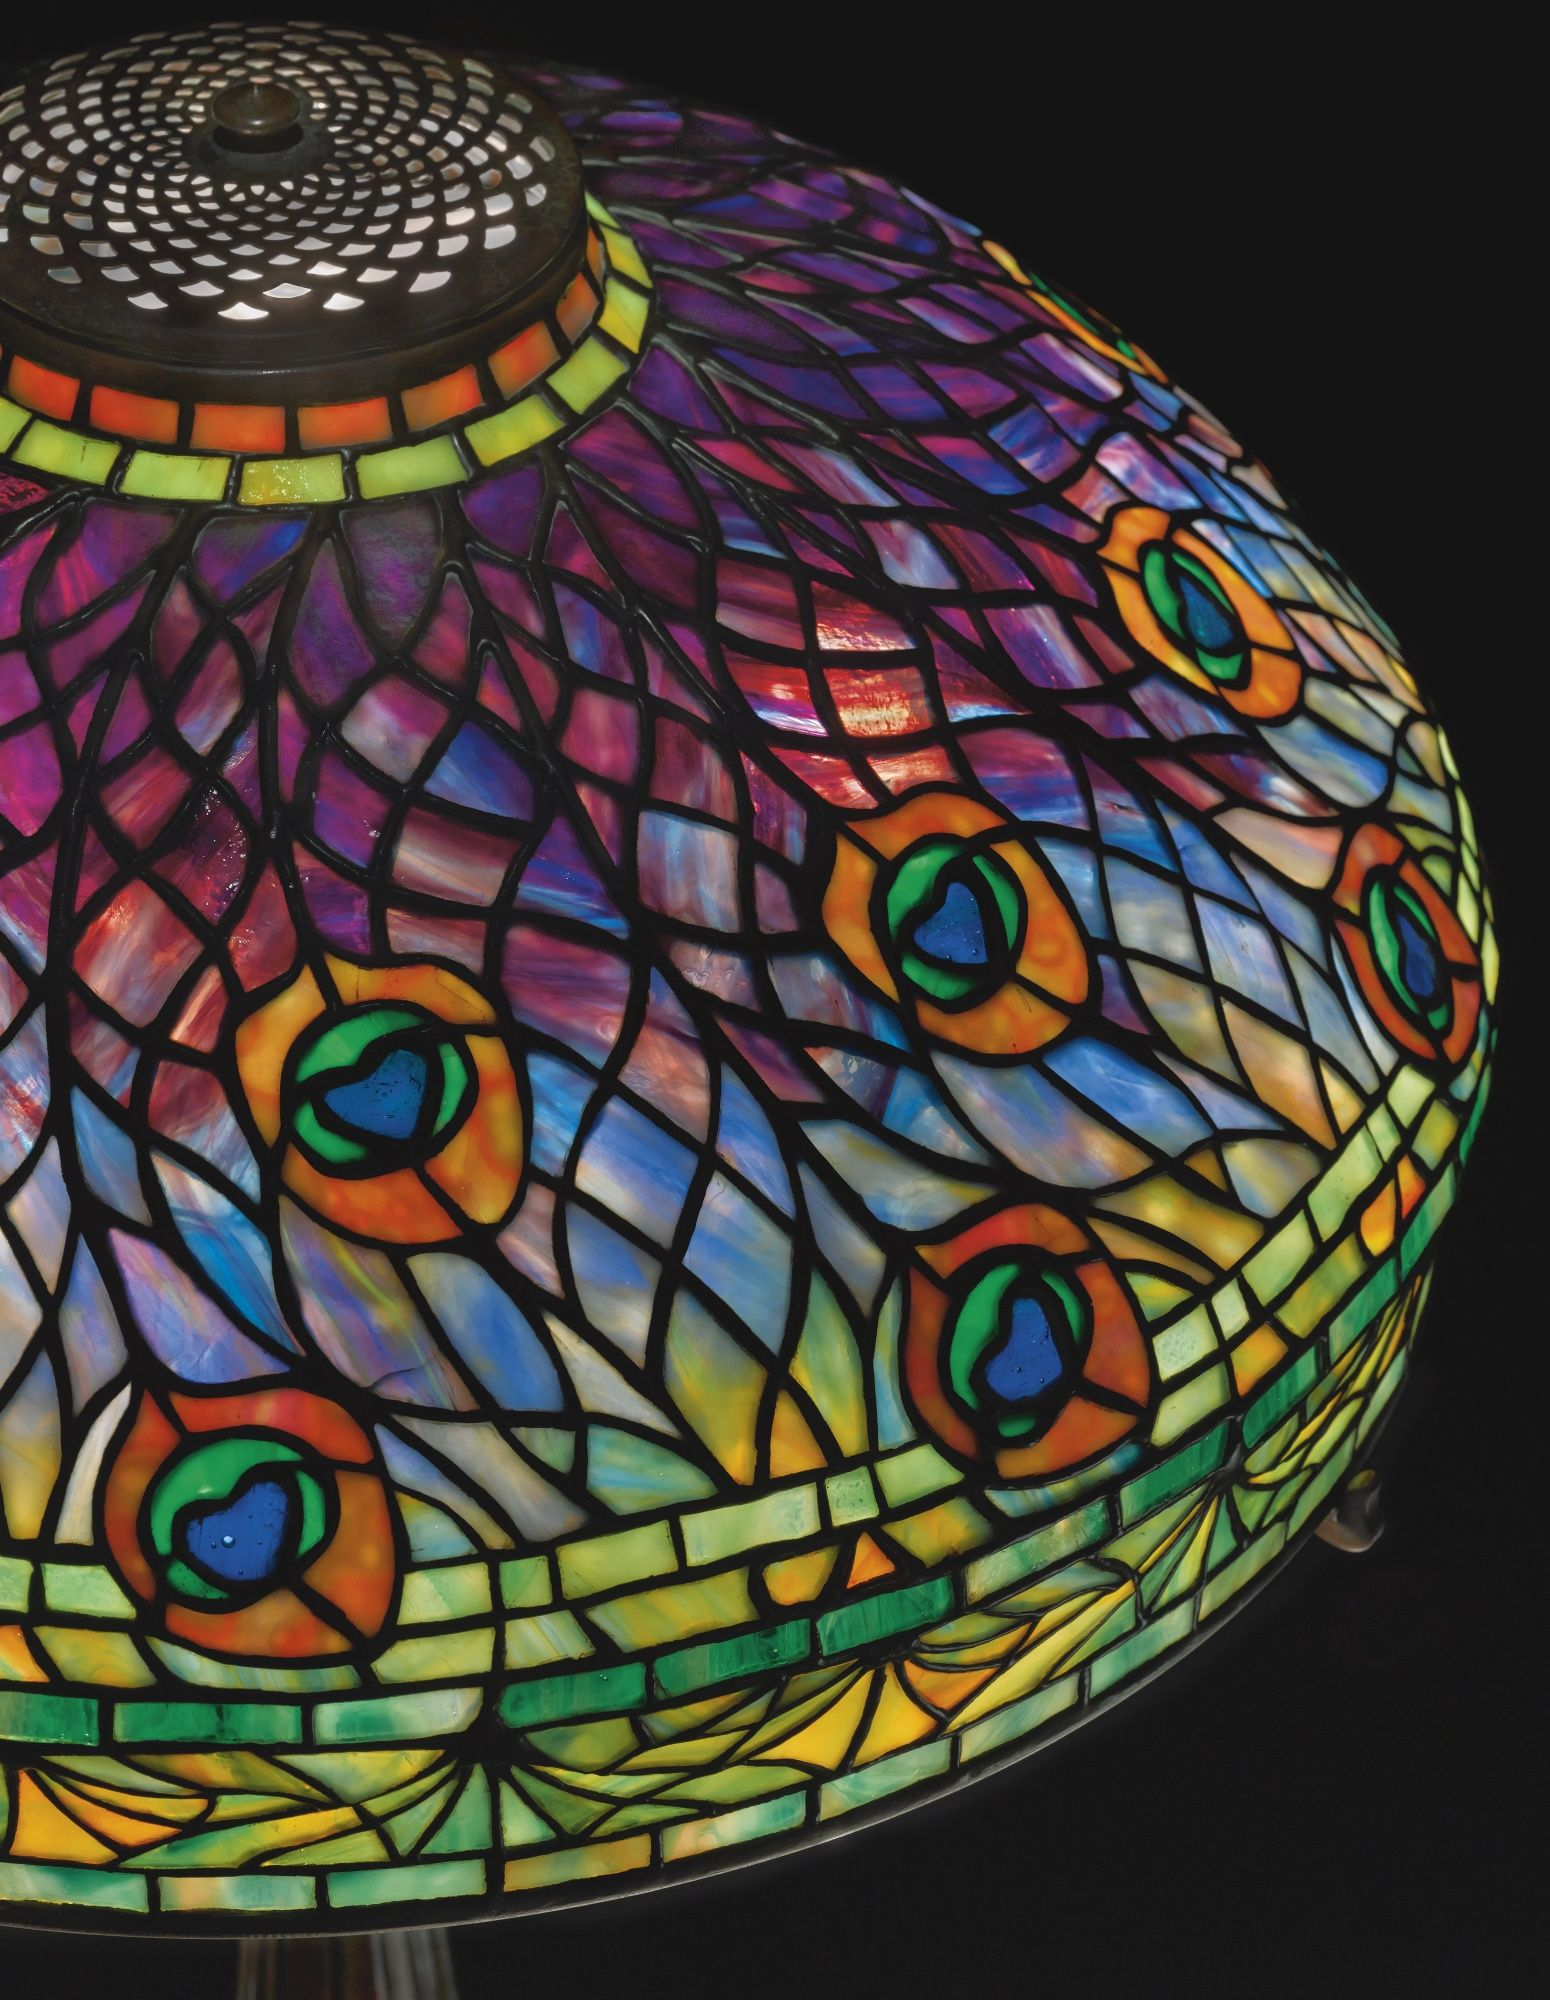 tiffany stained glass lamp. Tiffany Studios Peacock Table ||| Lighting. Stained GlassStained Glass LampsTiffany Lamp R